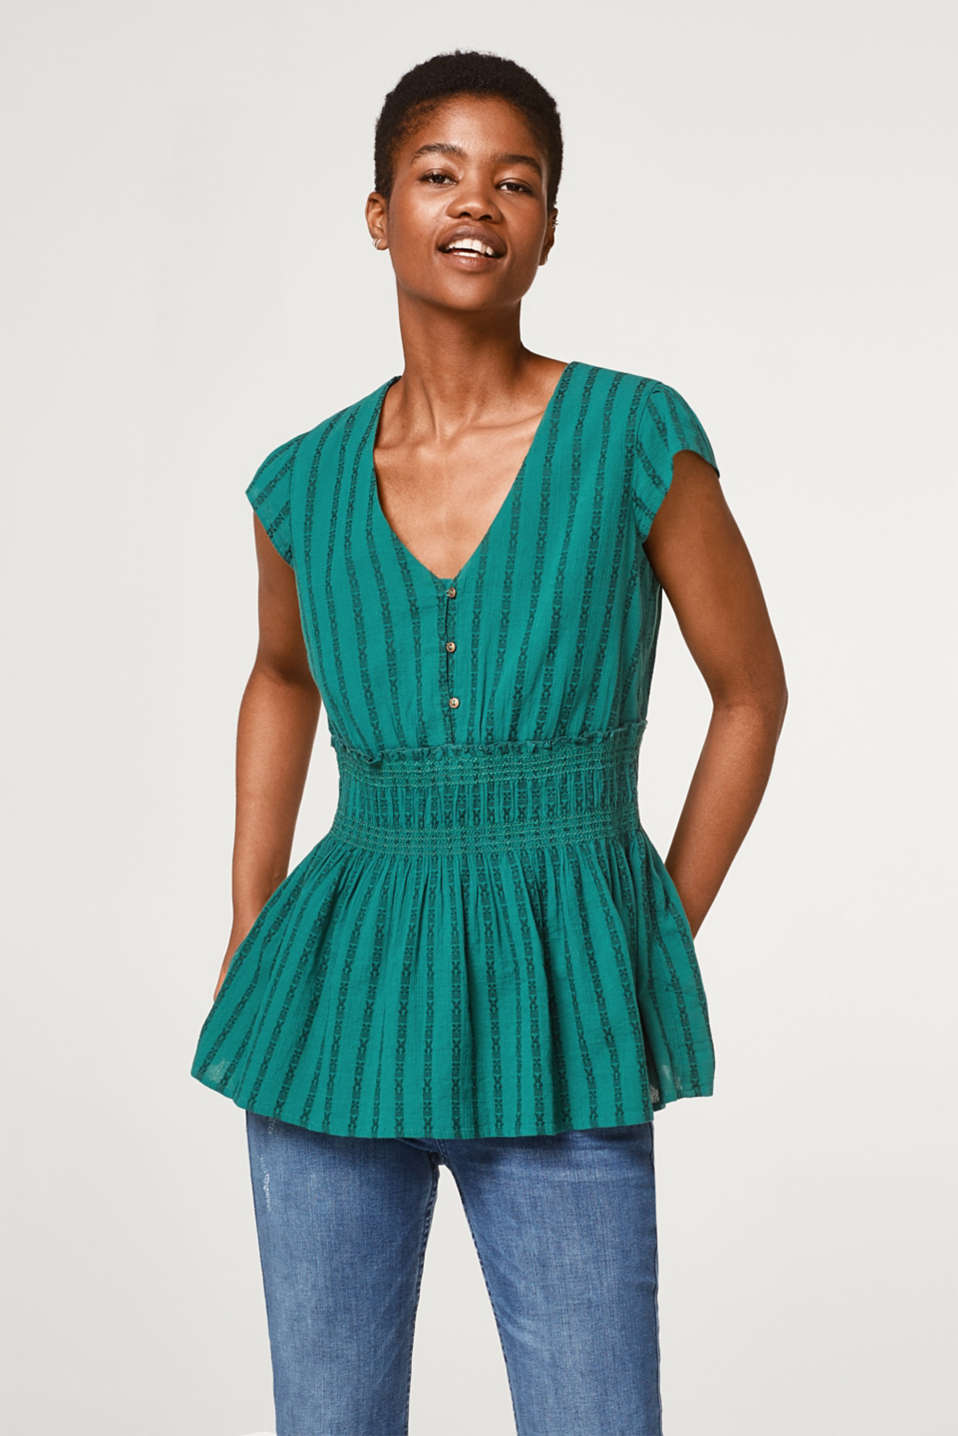 Esprit - Blouse top with a jacquard pattern and peplum